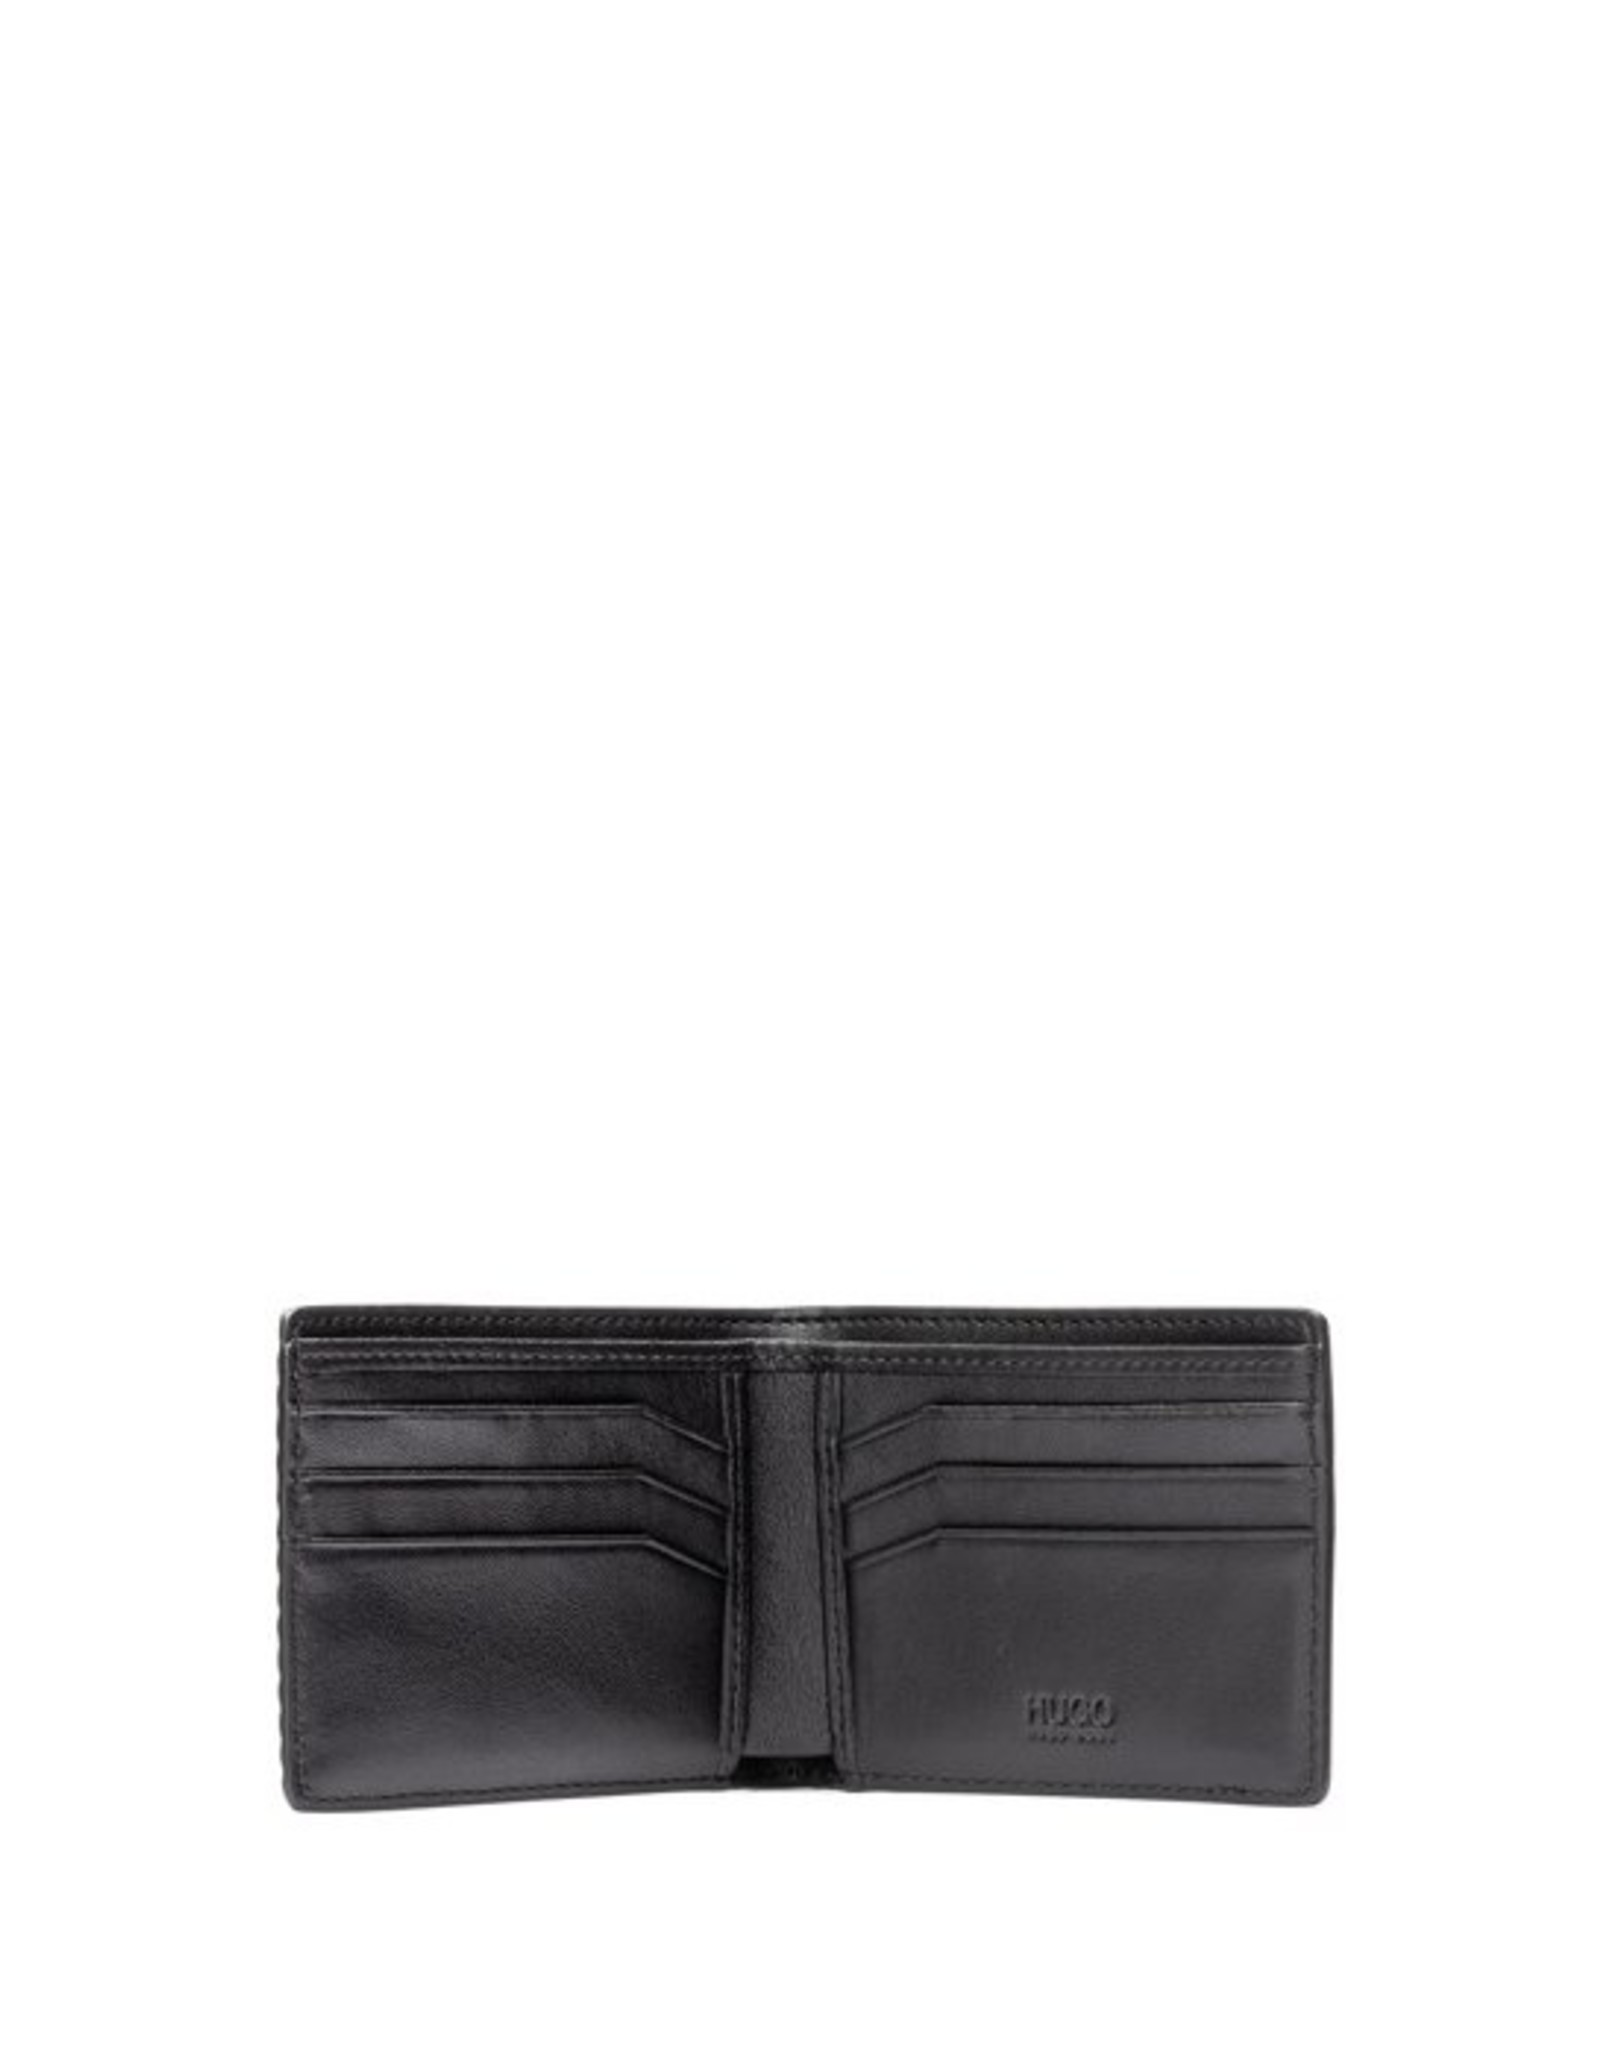 HUGO HUGO DIAMOND BILLFOLD WALLET